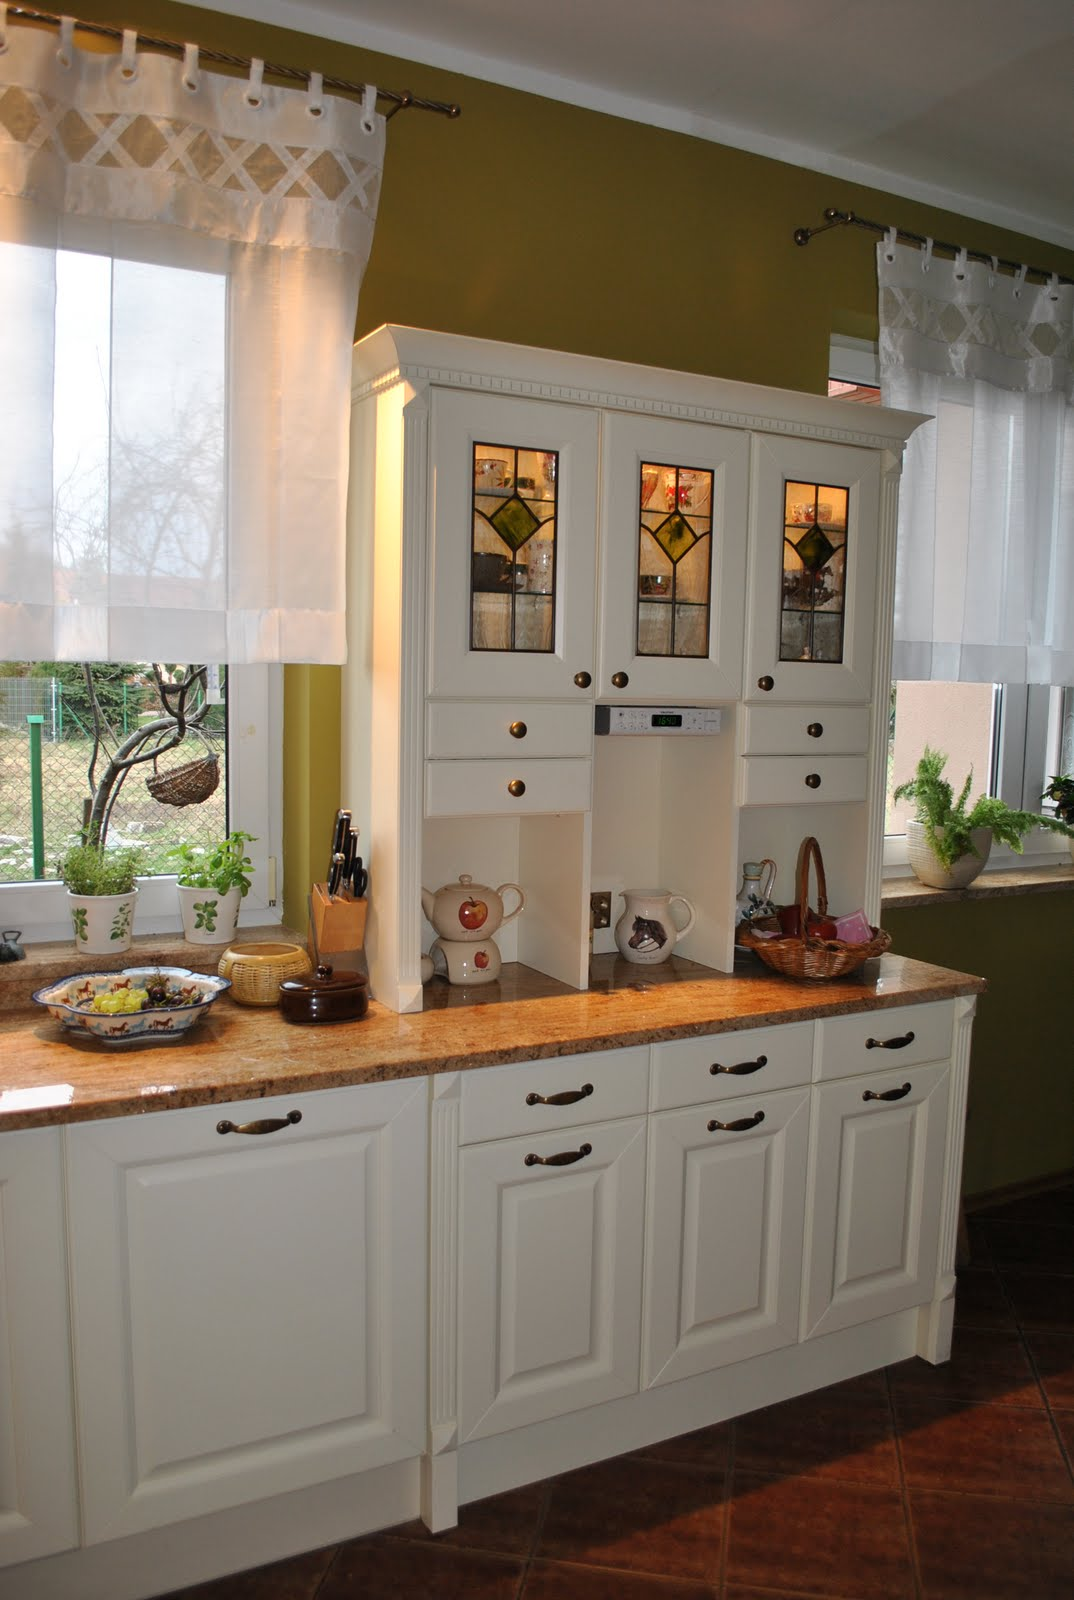 English Country Kitchen Design Ideas ~ English country style kitchens the interior decorating rooms